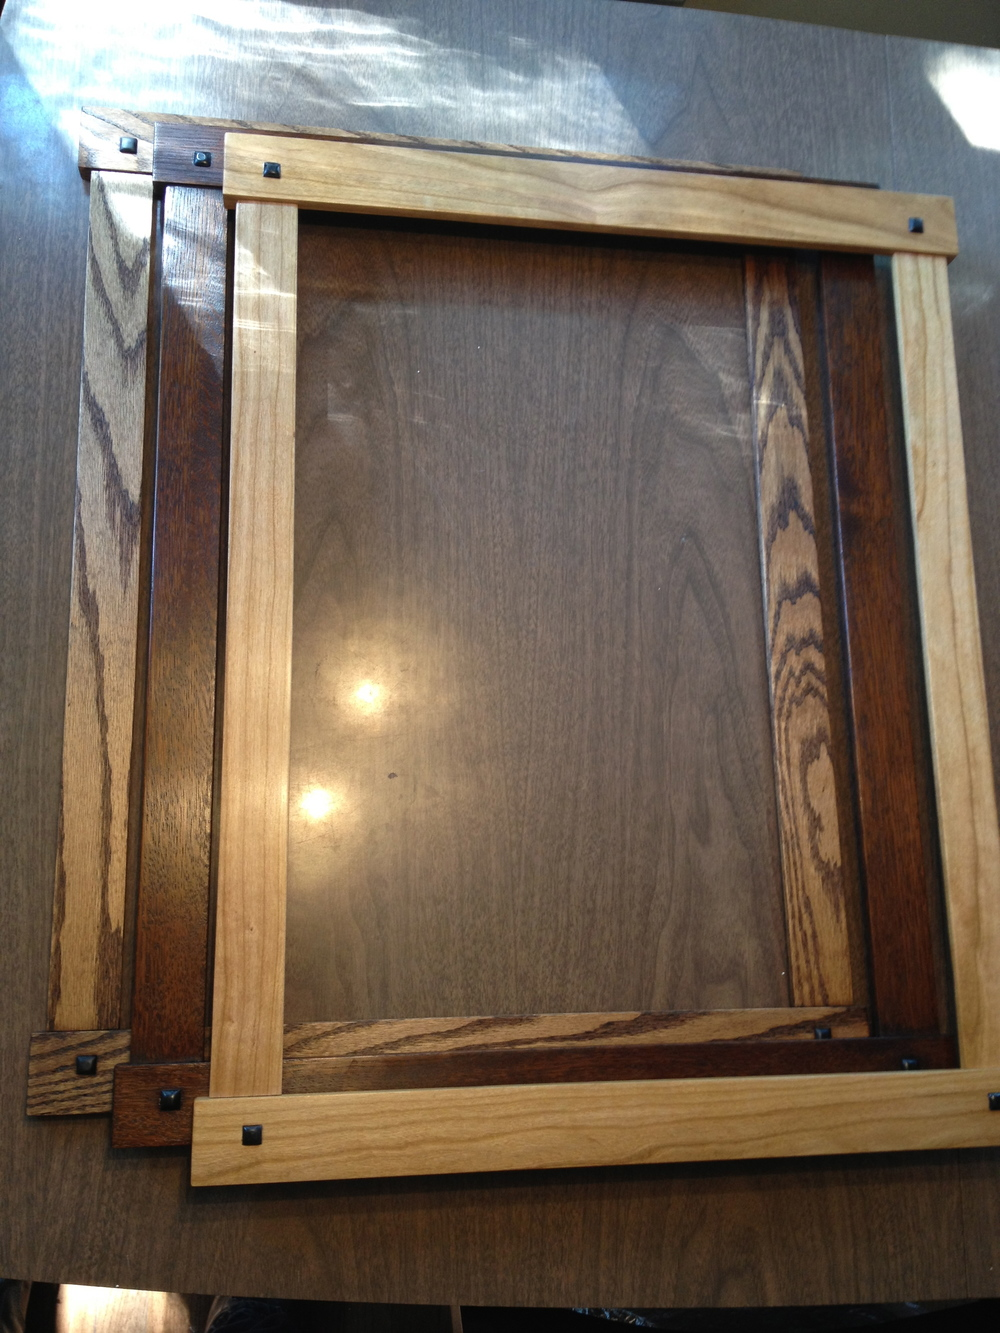 Picture frames dcw woodworks three simple craftsman style frames one each in cherry white oak and red oak they feature ebony pillowed pegs these were more of an experiment in jeuxipadfo Image collections